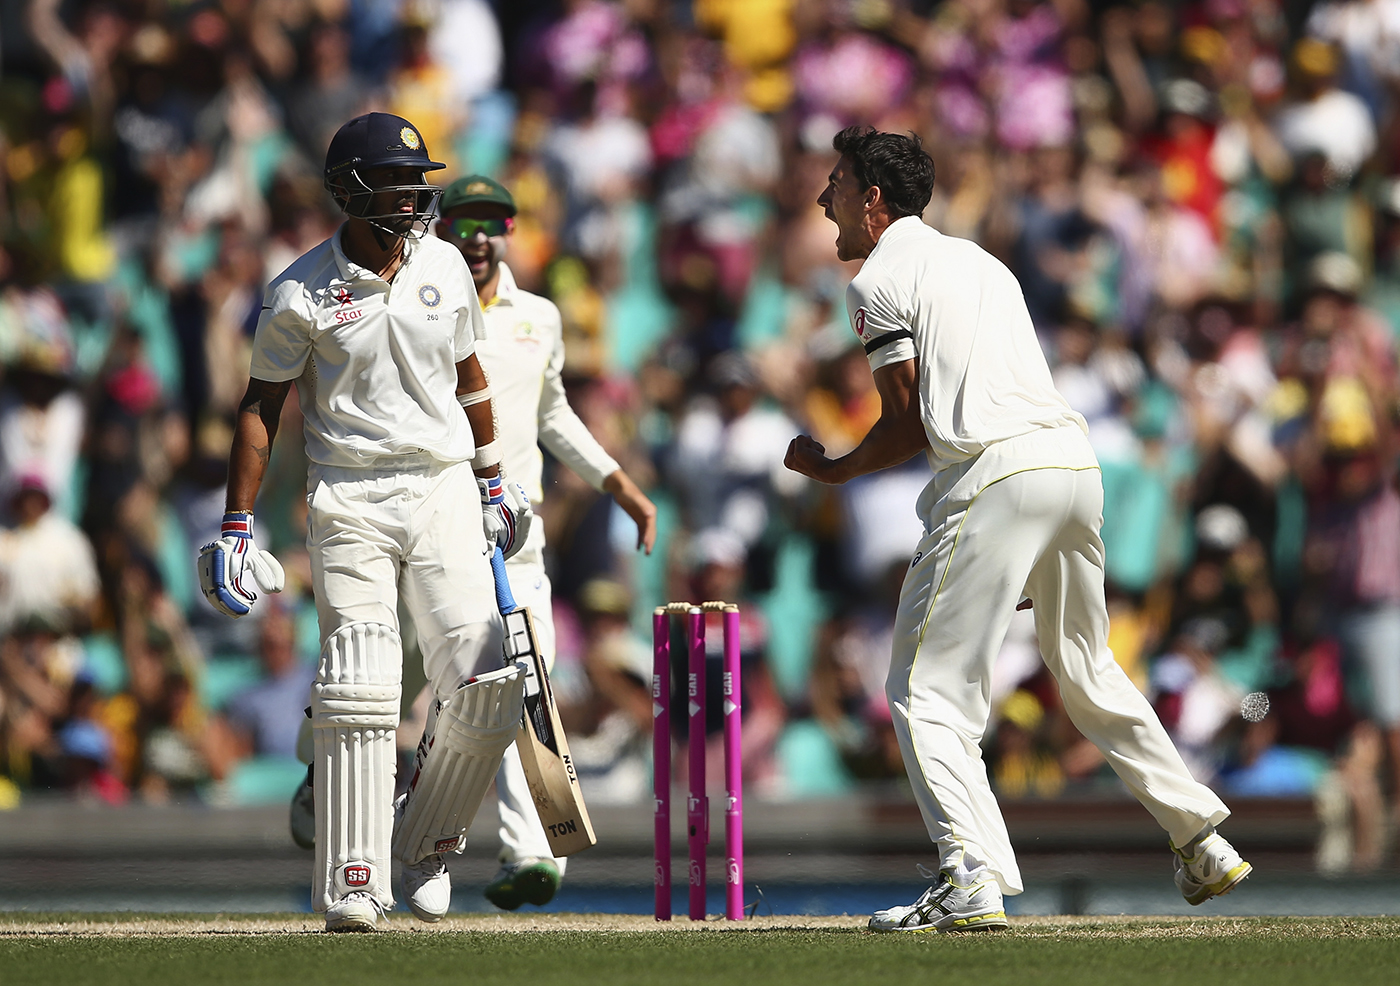 How d'ya like me now? Starc is impassioned after dismissing M Vijay in the first over of the 2014-15 SCG Test